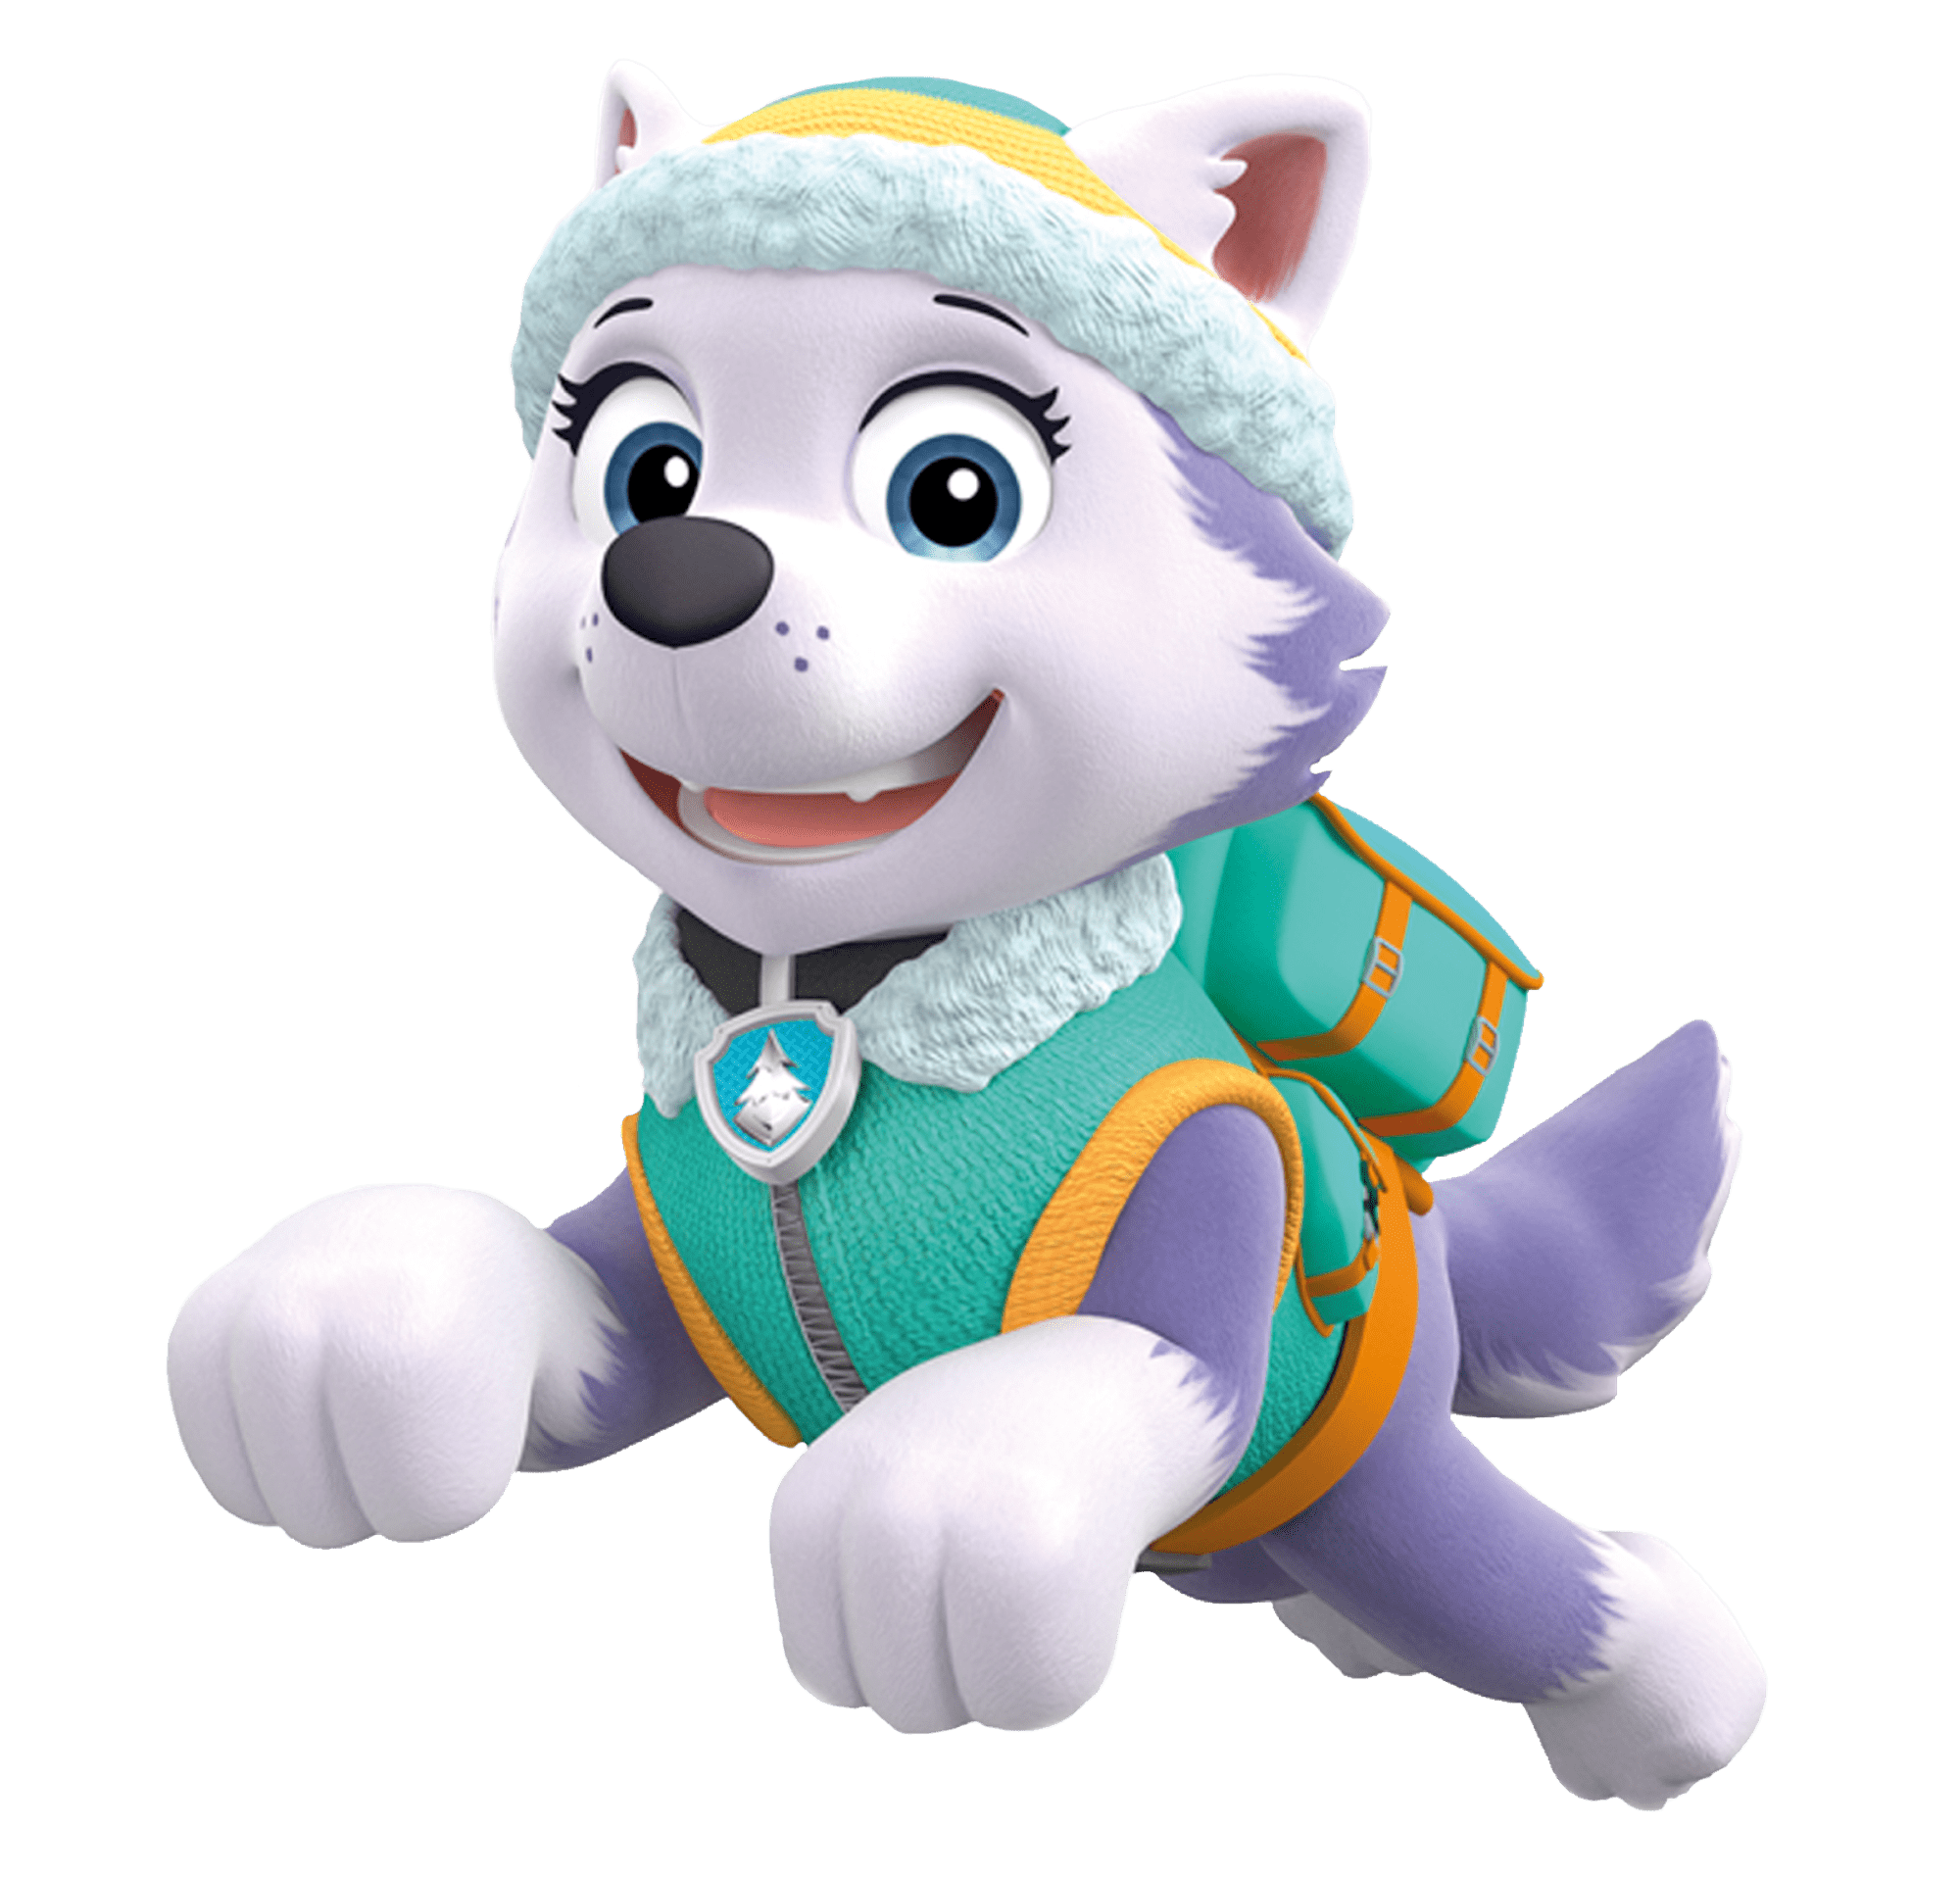 Halloween paw patrol clipart free clipart library download 28+ Collection of Paw Patrol Clipart | High quality, free cliparts ... clipart library download